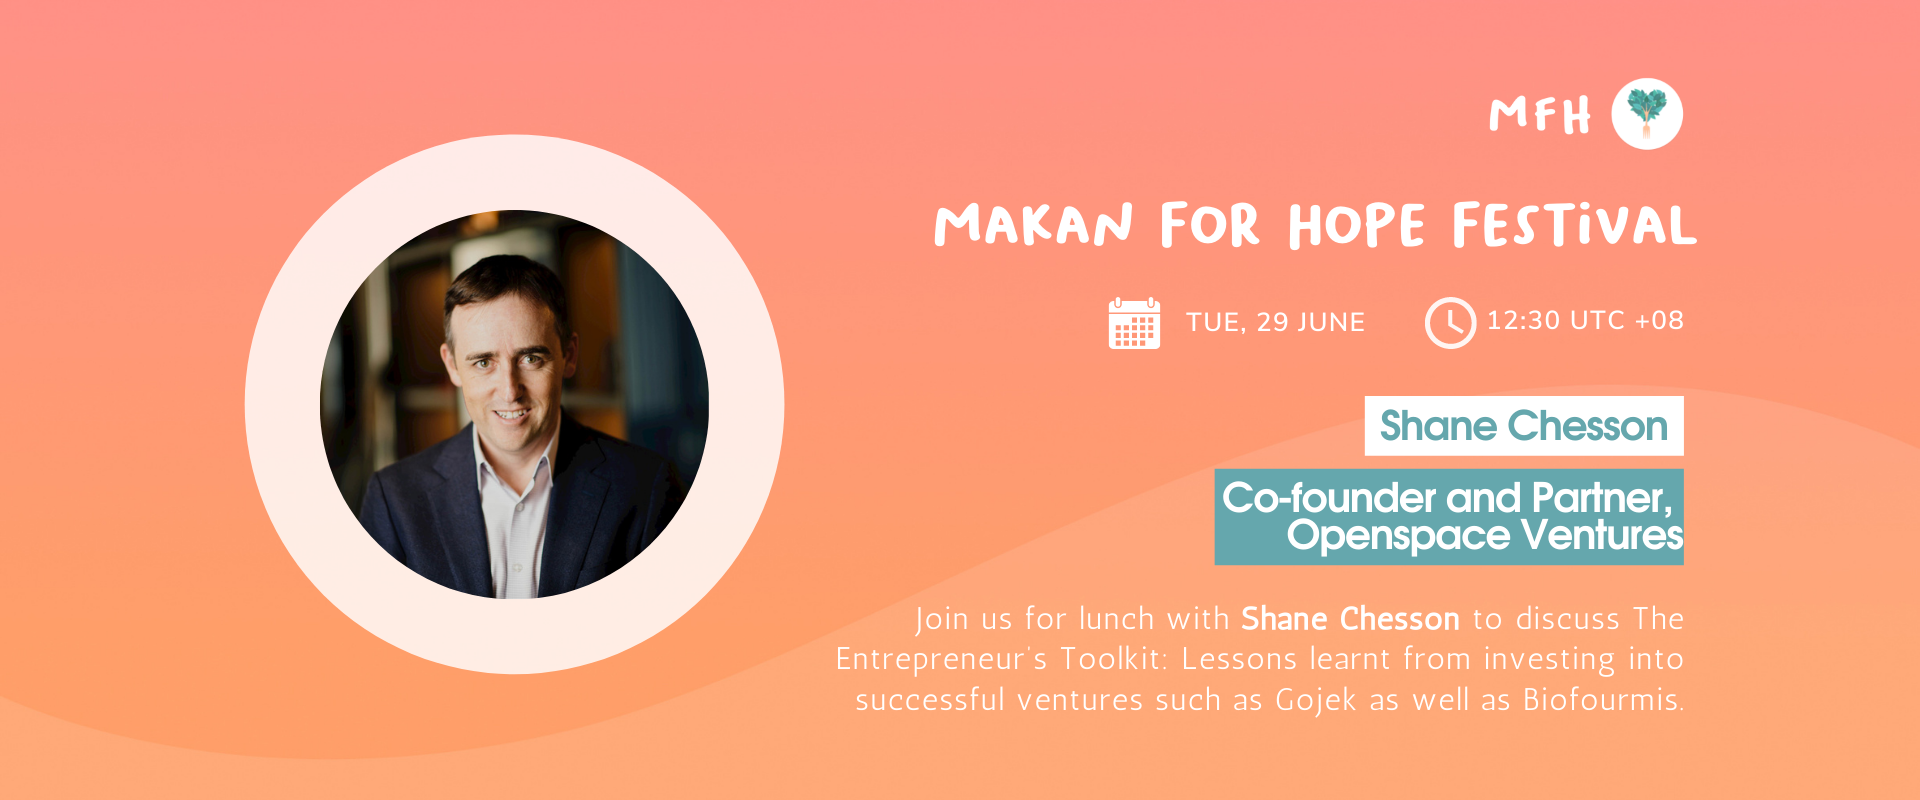 Shane Chesson - The Entrepreneur's Toolkit: Lessons learnt from investing into Successful Ventures such as Gojek and Biofourmis